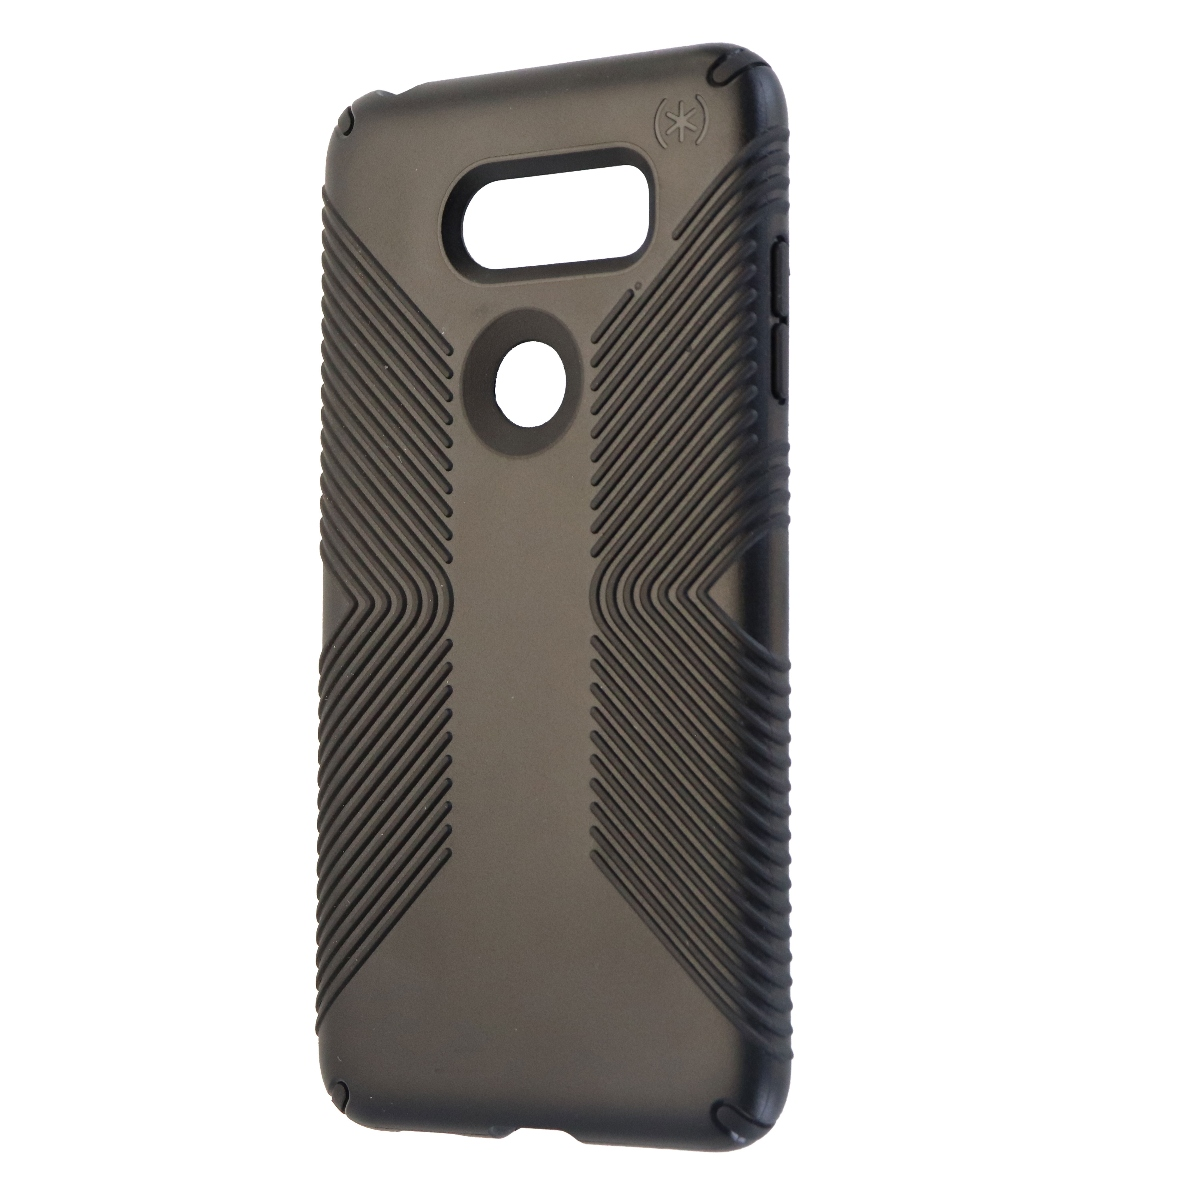 Speck Presidio Grip Series Hybrid Hard Case Cover for LG V30 - Black